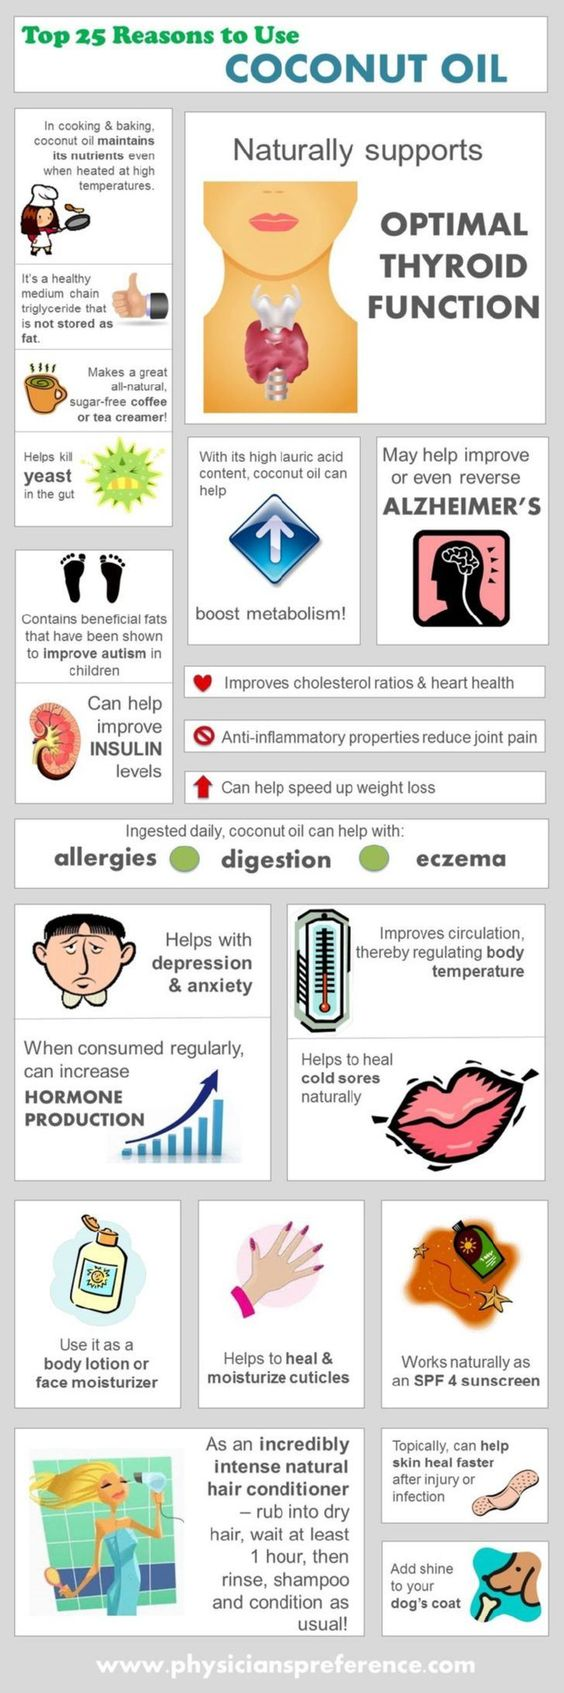 25 Reasons to use coconut oil